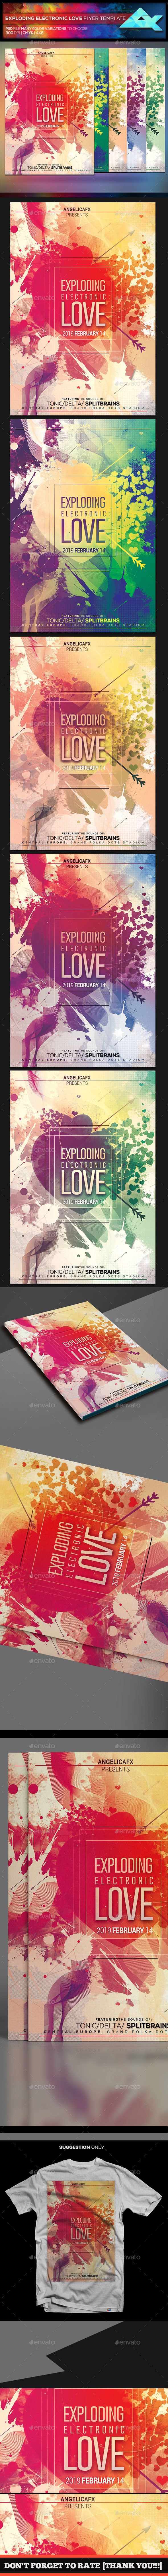 Exploding Electronic Love Flyer Template - Events Flyers